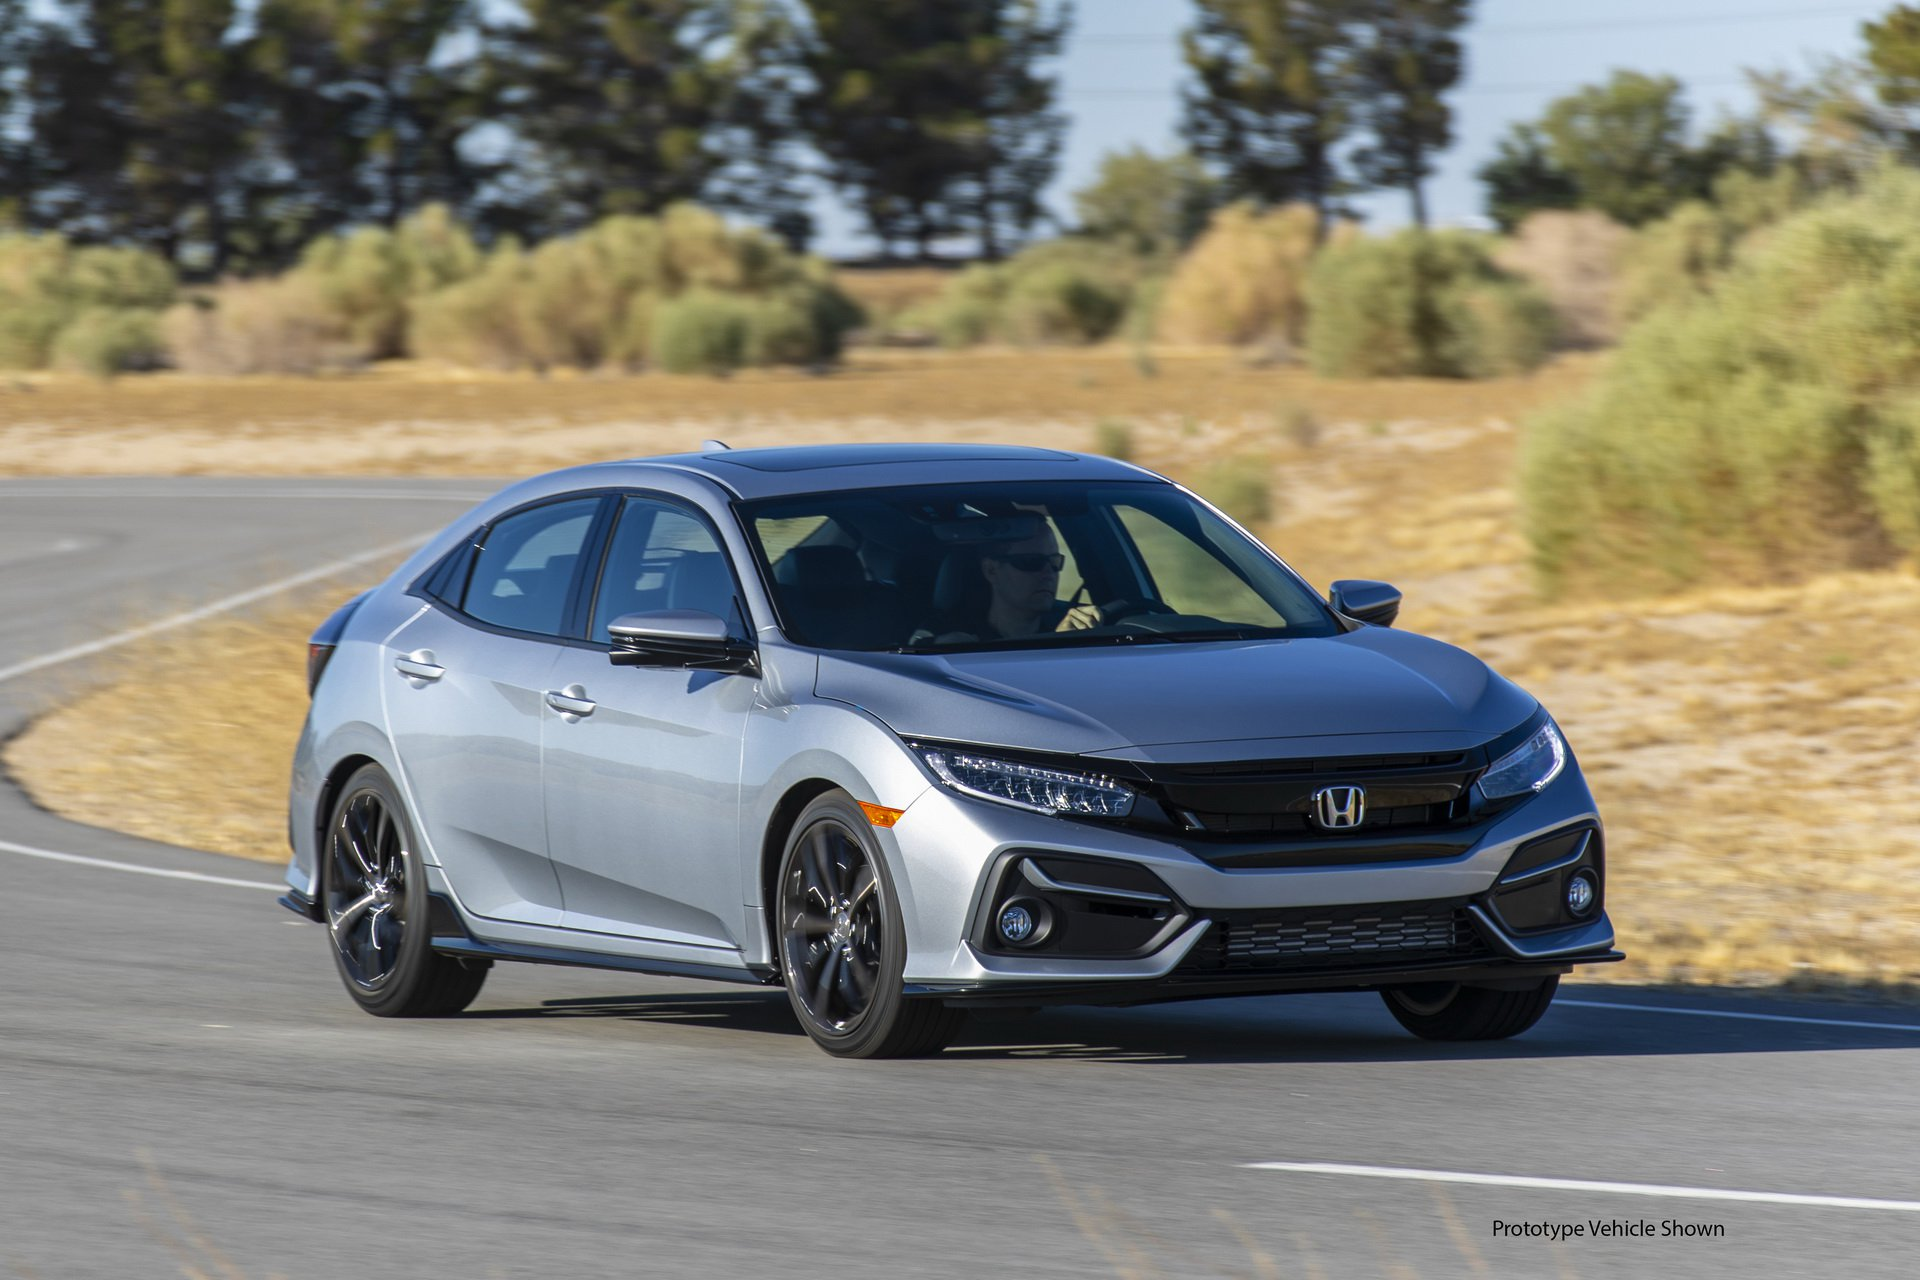 Honda Civic Hatchback facelift debuts in the US